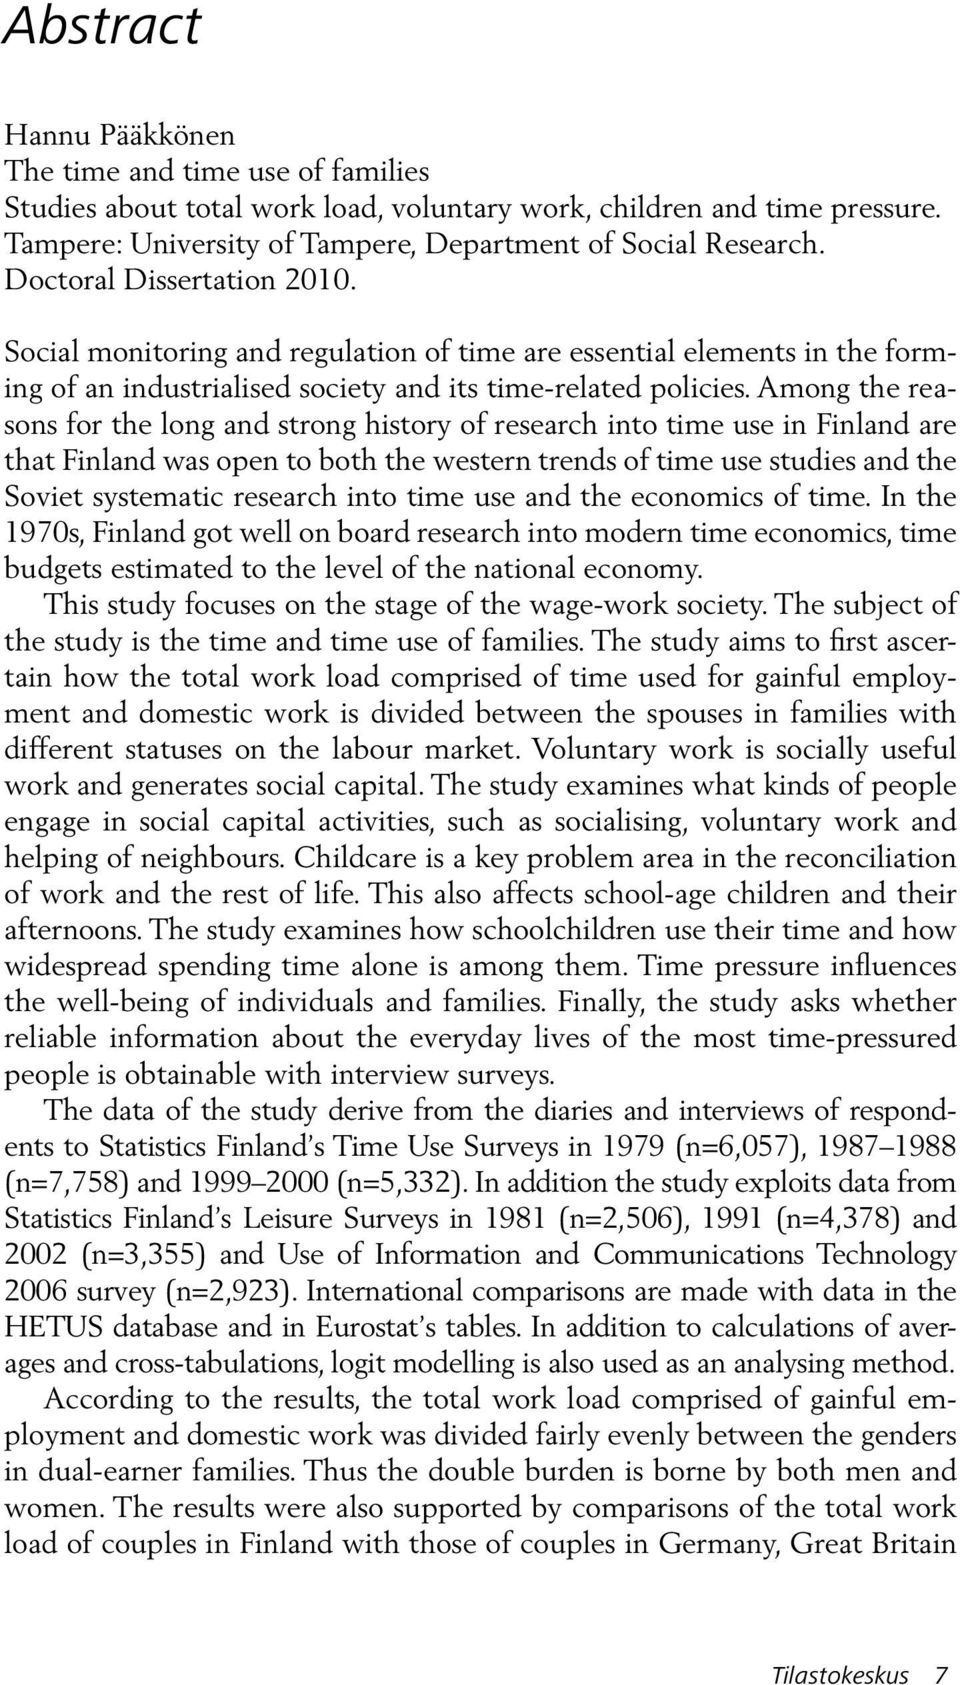 Among the reasons for the long and strong history of research into time use in Finland are that Finland was open to both the western trends of time use studies and the Soviet systematic research into